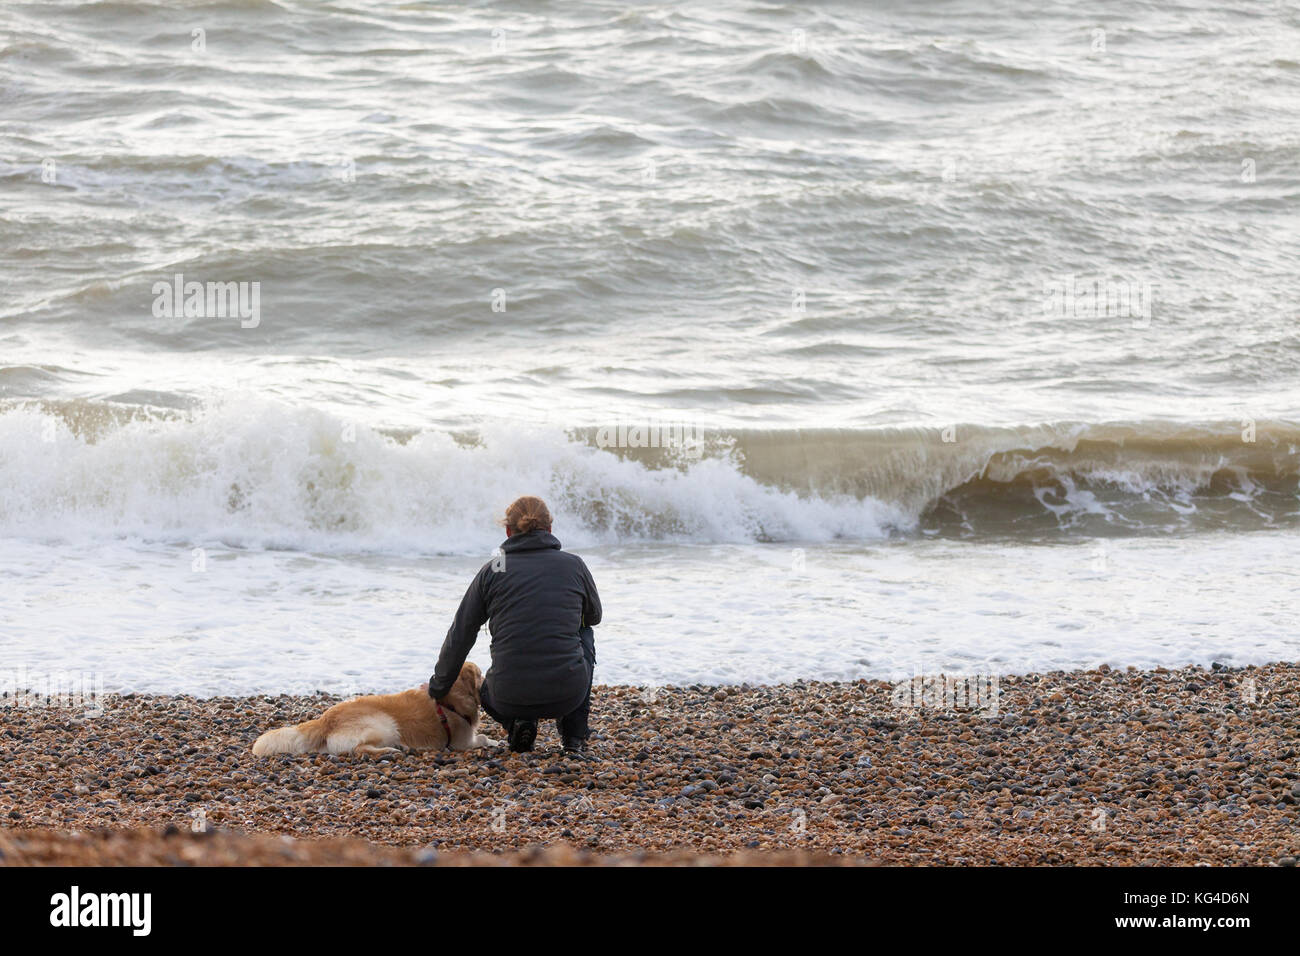 Hastings, East Sussex, UK. 4th November, 2017. Rough conditions out at sea in Hastings today with temperatures of - Stock Image